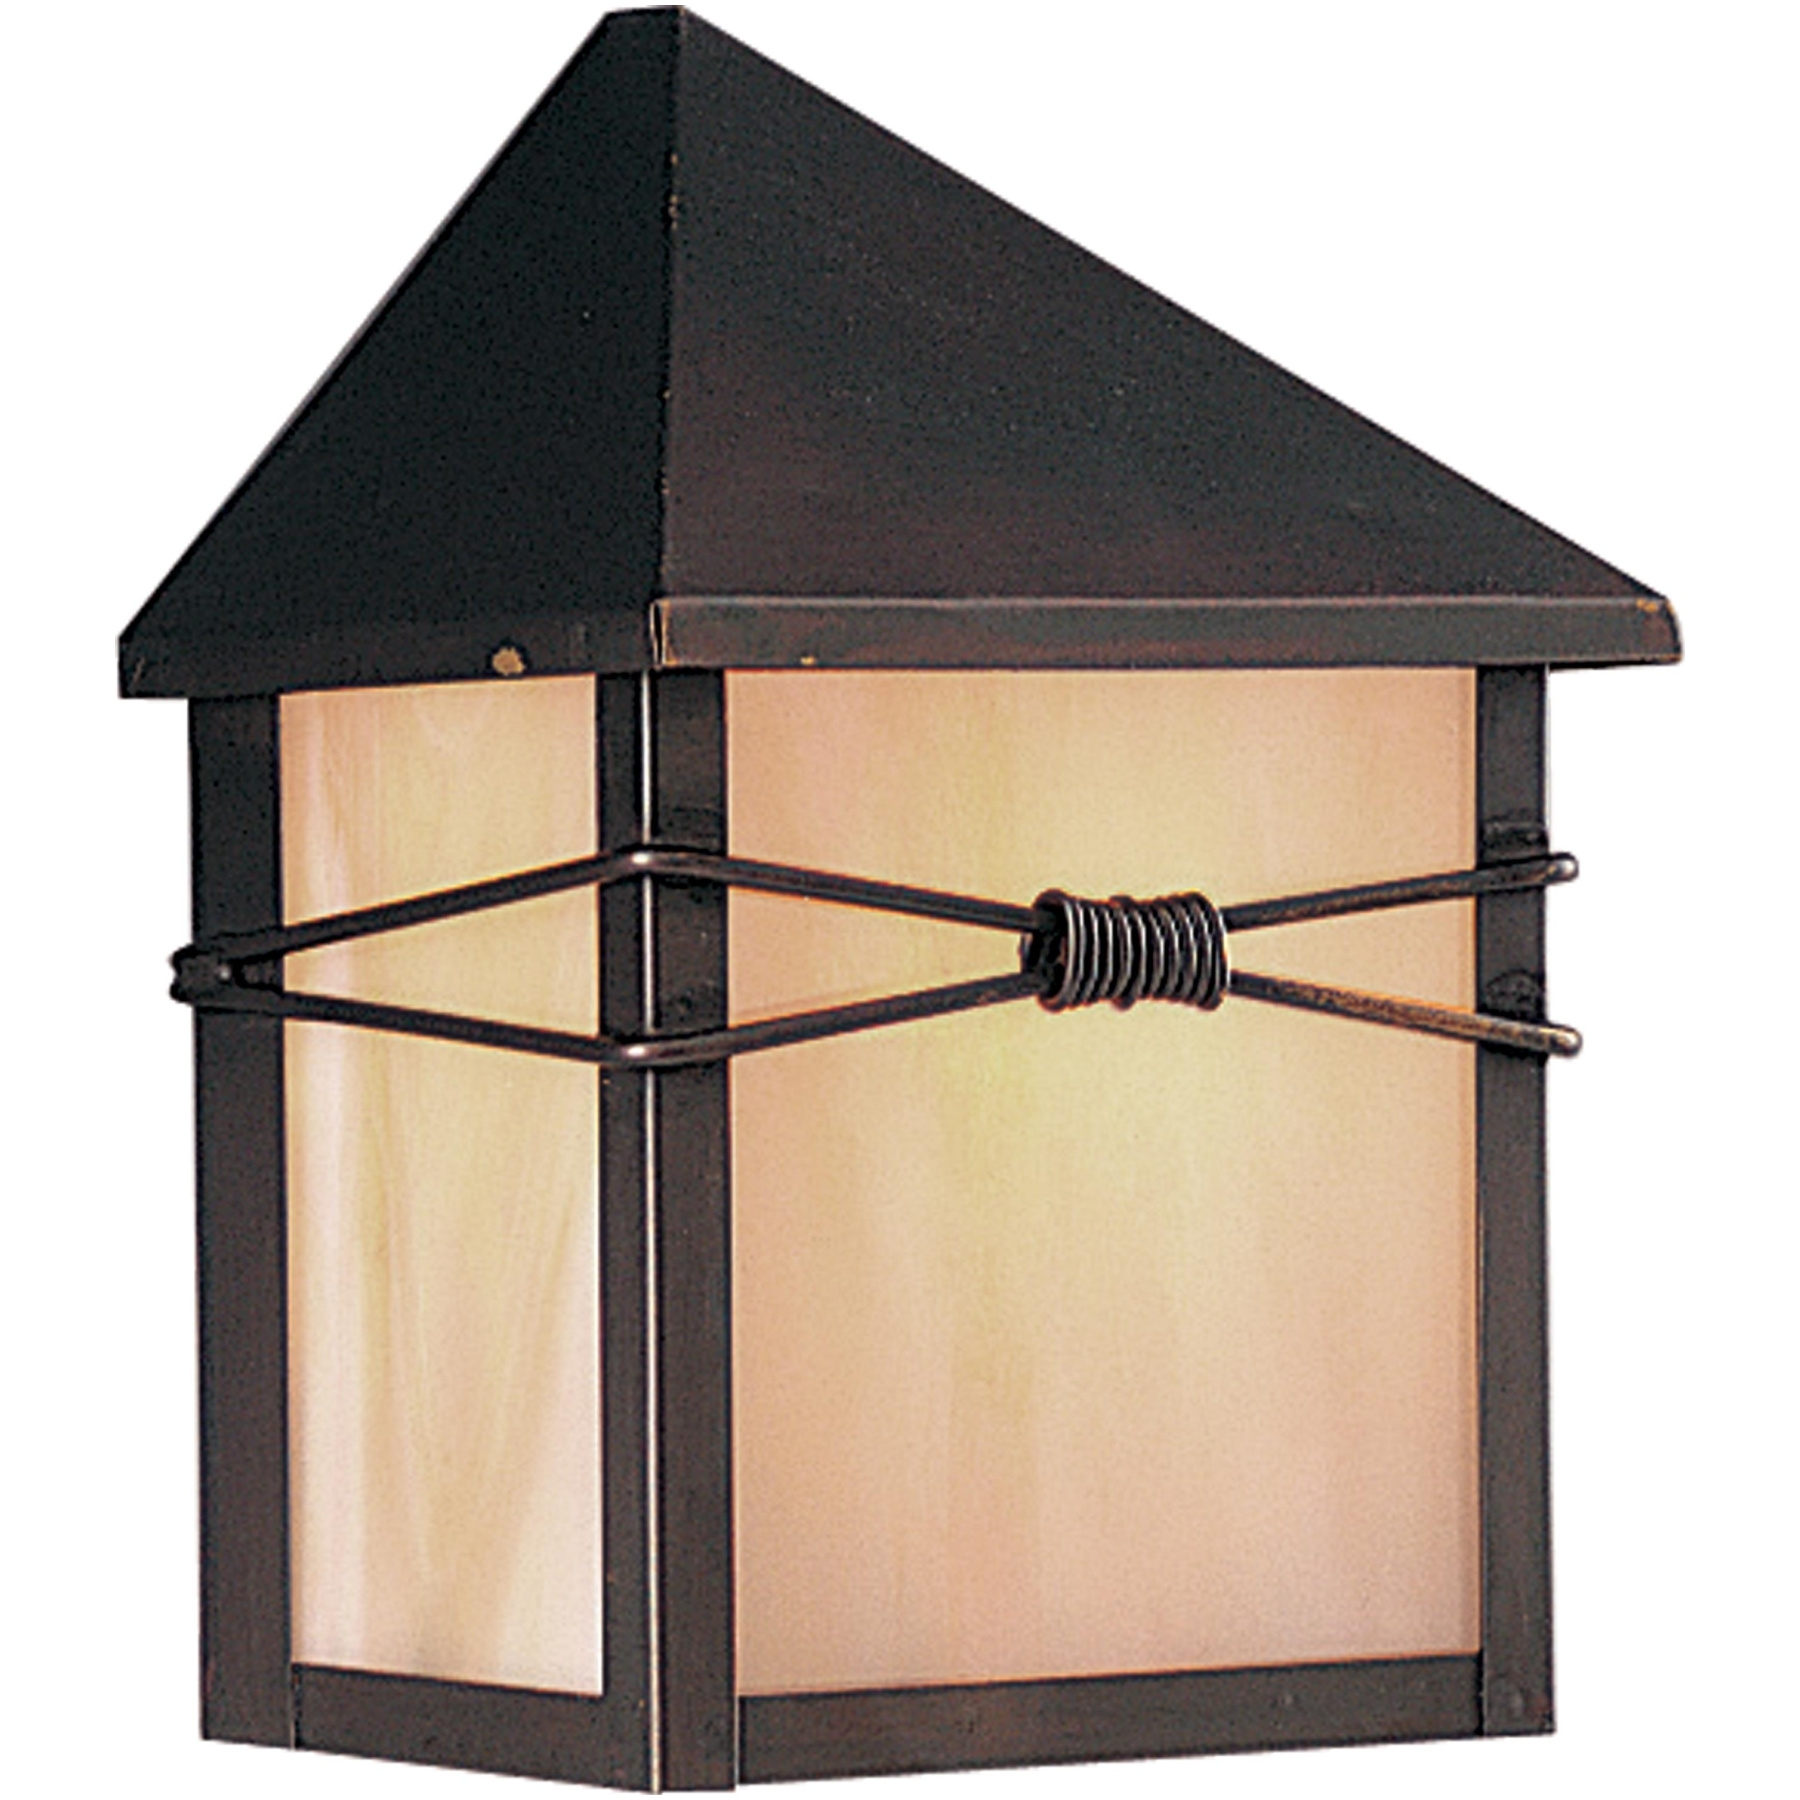 Japanese Outdoor Wall Lighting – Video And Photos | Madlonsbigbear Regarding Japanese Outdoor Wall Lighting (#7 of 15)